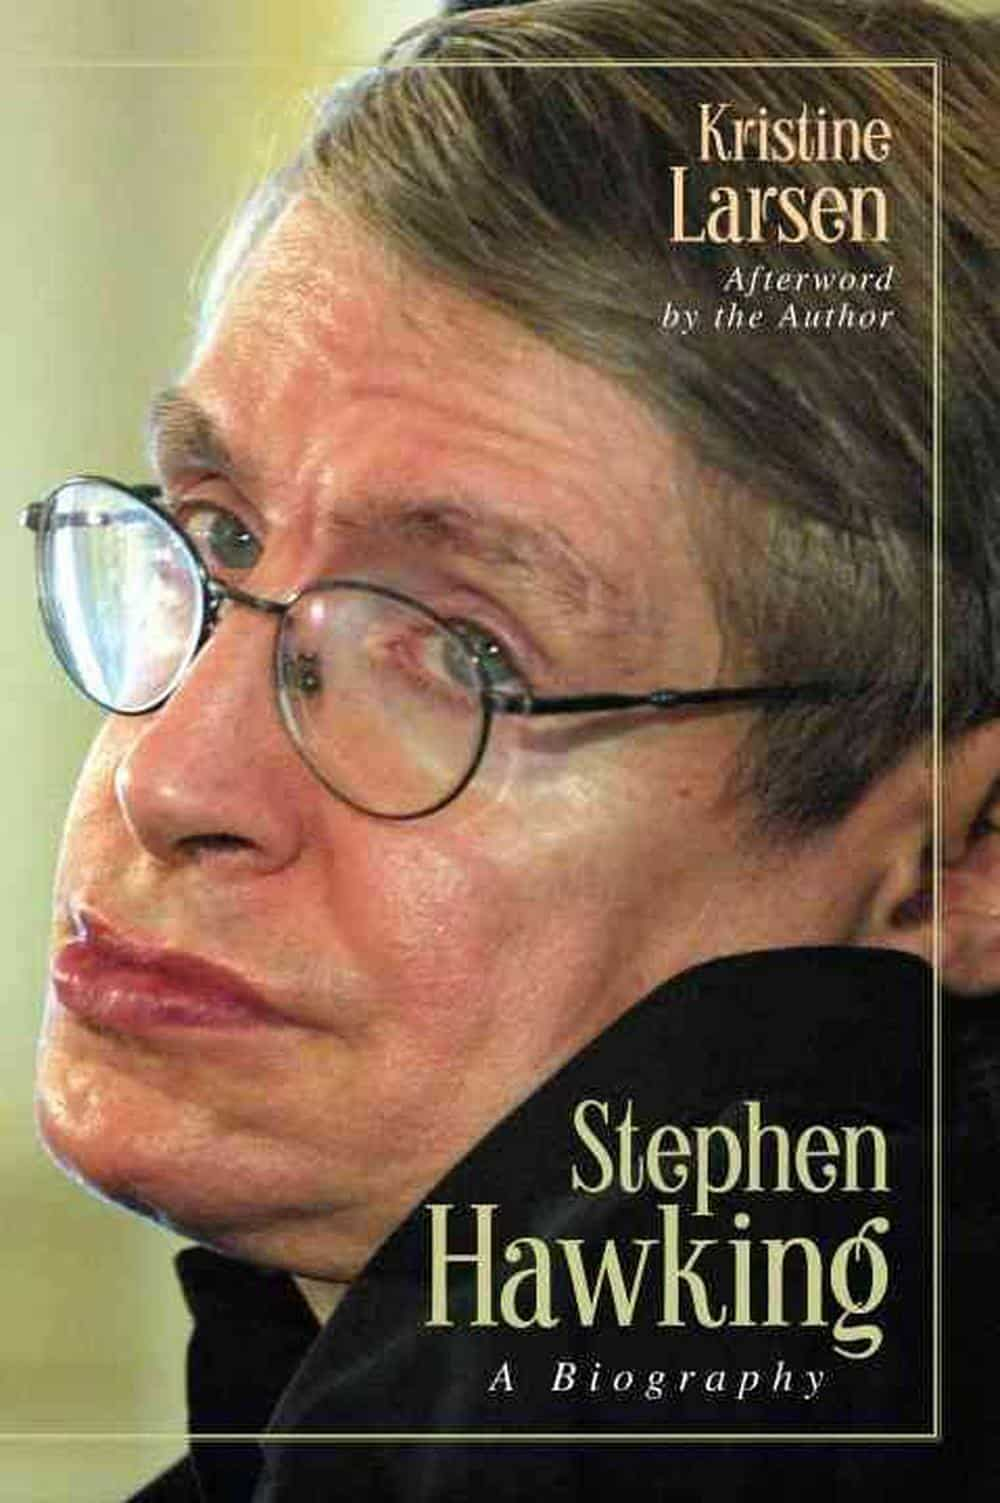 Stephen Hawking - A Biography